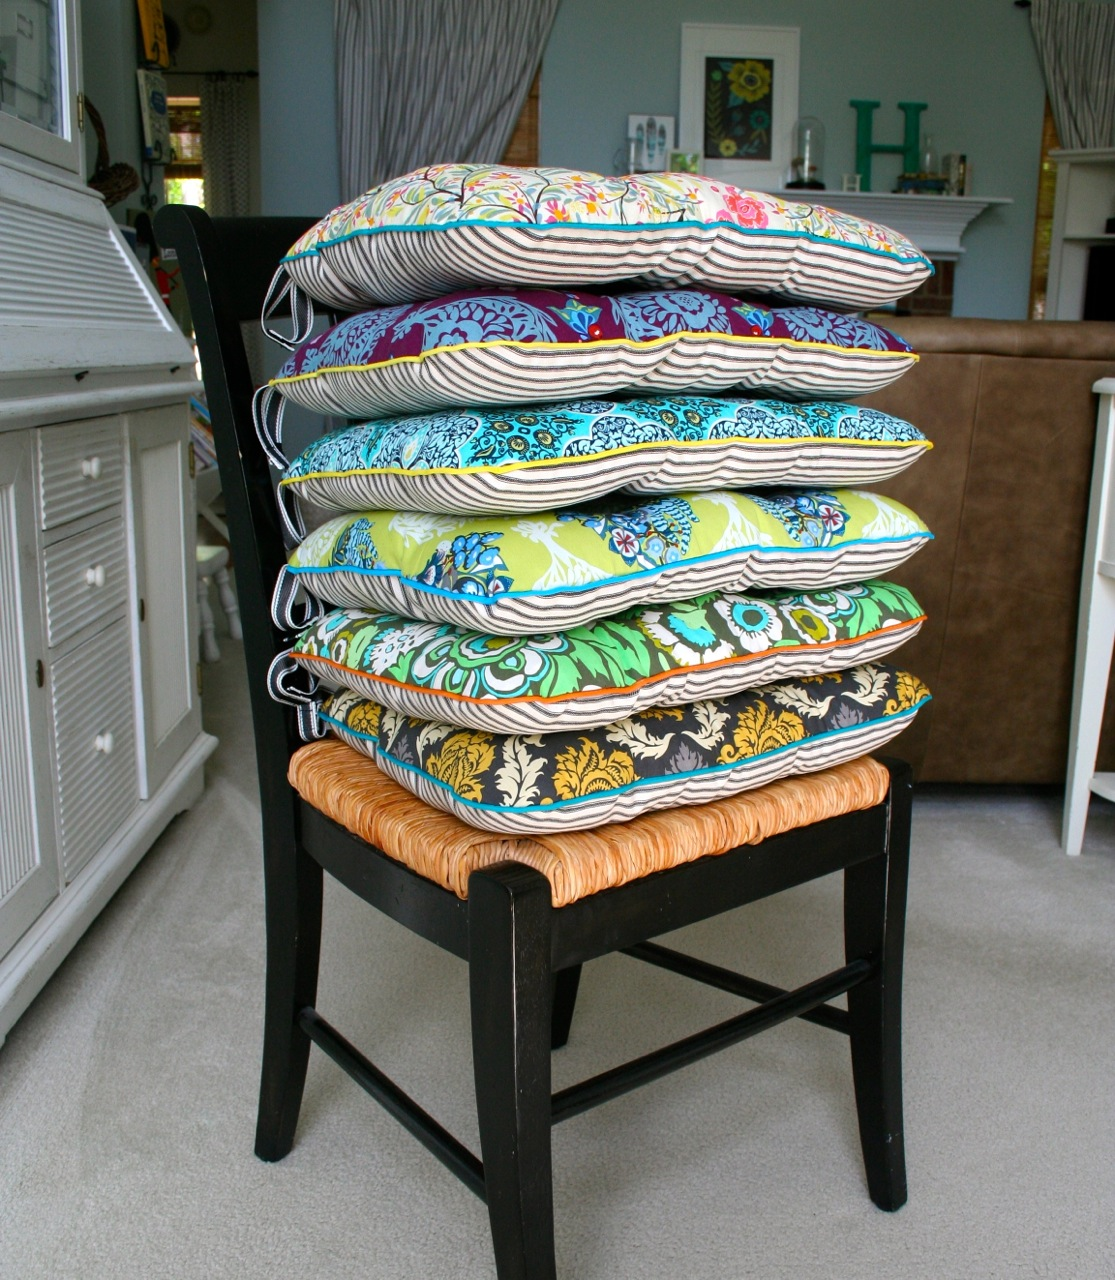 Mmmcrafts: Six Cushions Only Took Ten Years. Now You Make